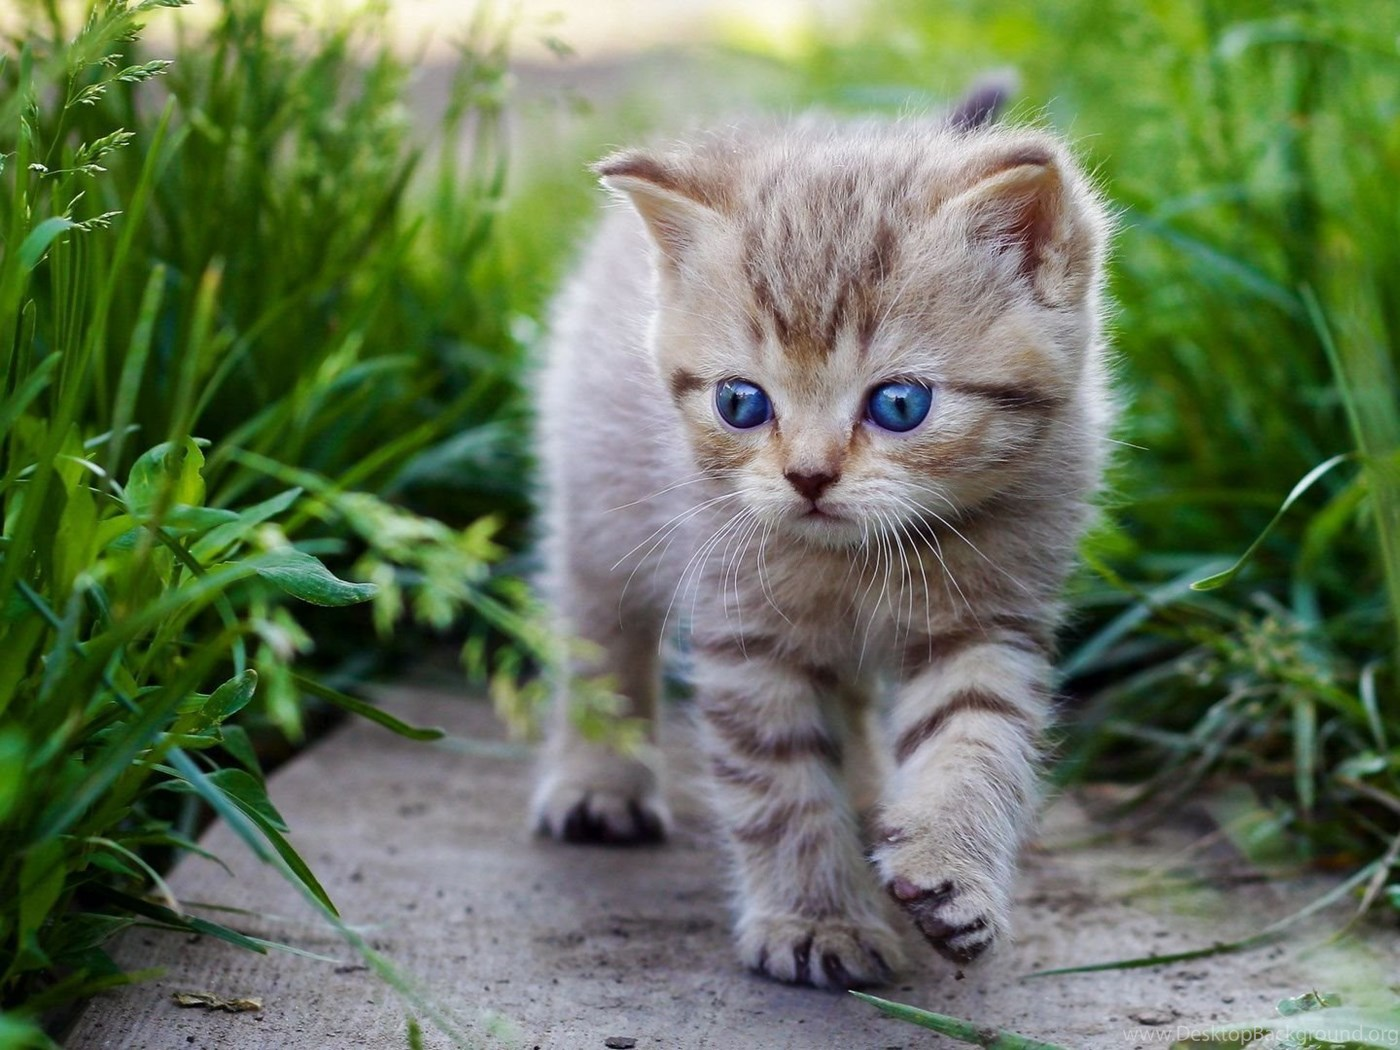 High Resolution Cute Baby Animal Kitty Cat Wallpapers Hd 11 Full Desktop Background